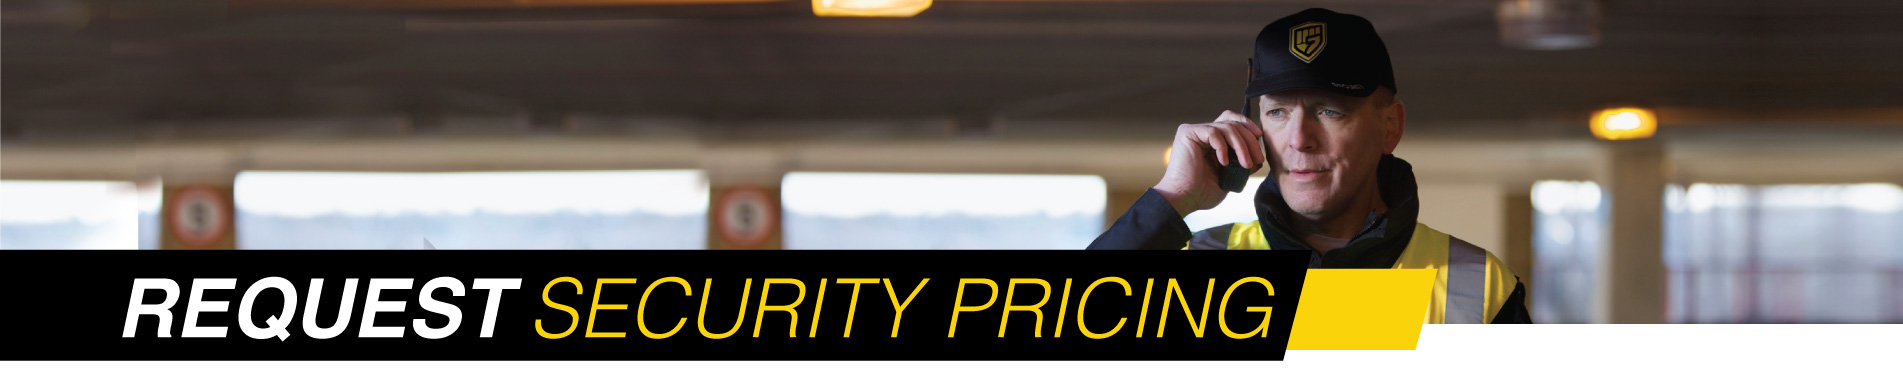 Request Houston Area Security Pricing